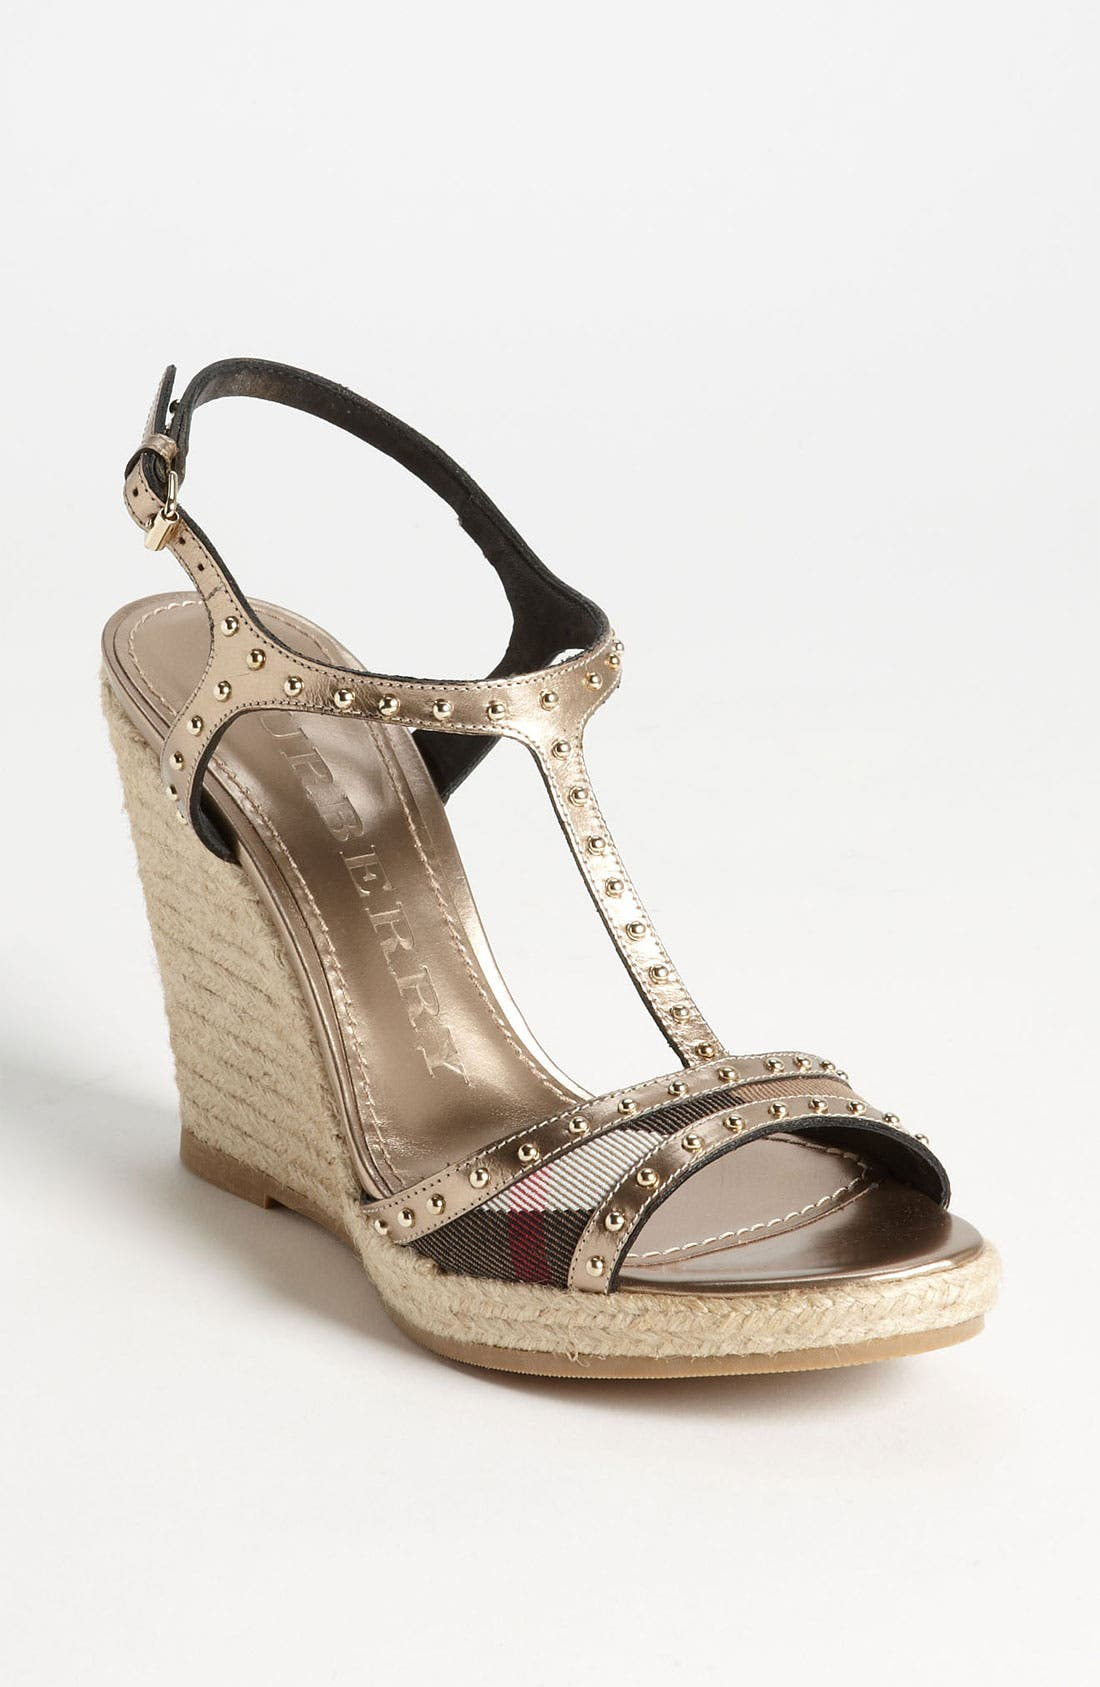 Main Image - Burberry 'Laleham' Wedge